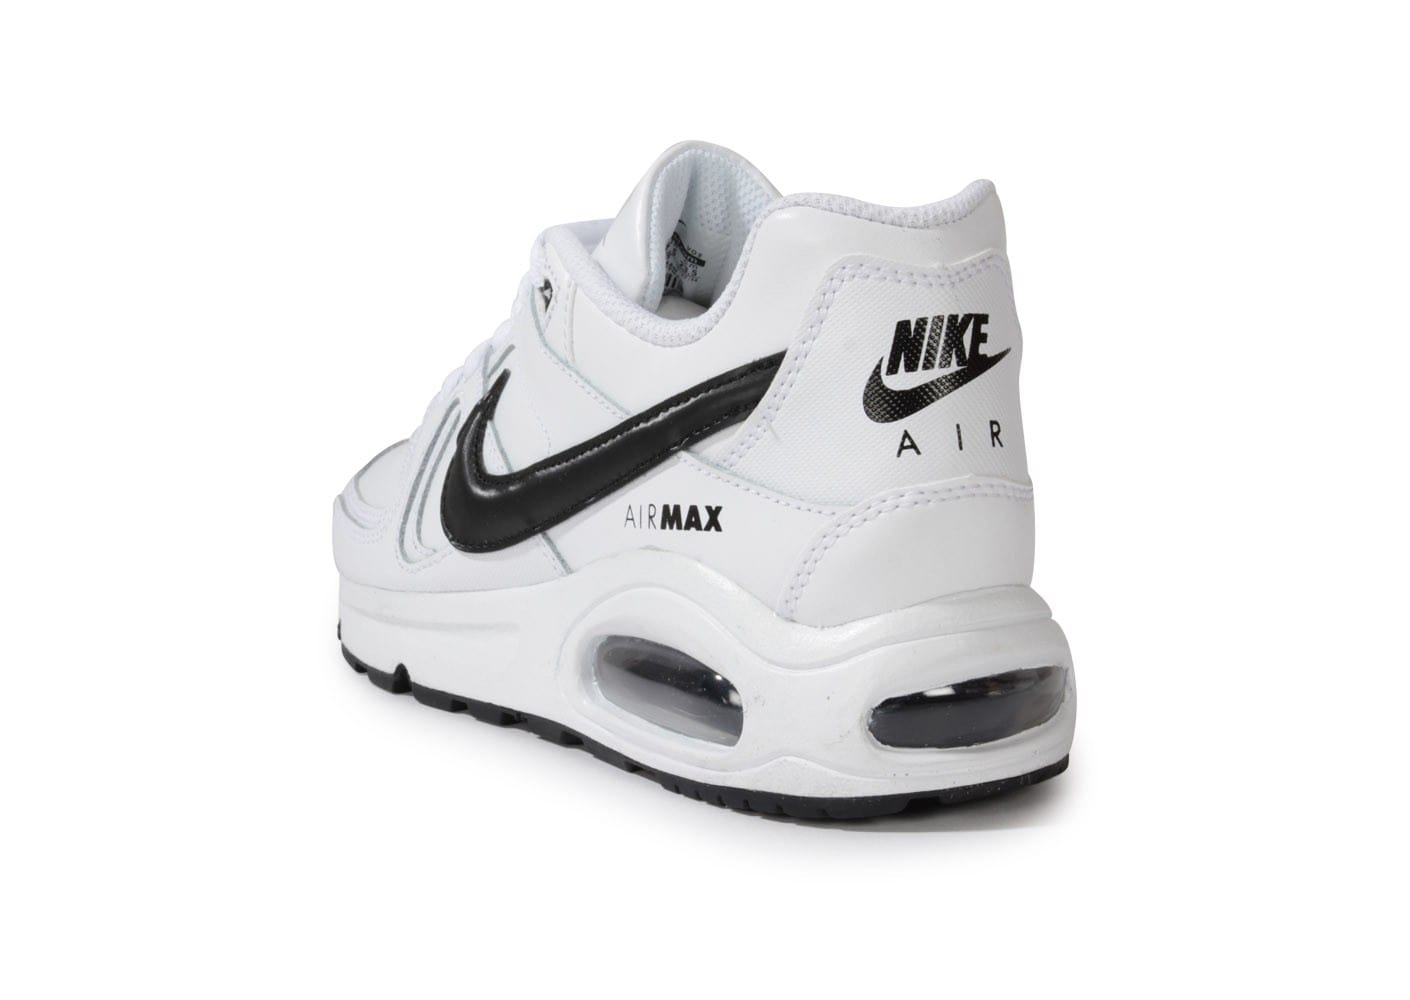 nike air max command gs blanc et noir chaussures chaussures chausport. Black Bedroom Furniture Sets. Home Design Ideas